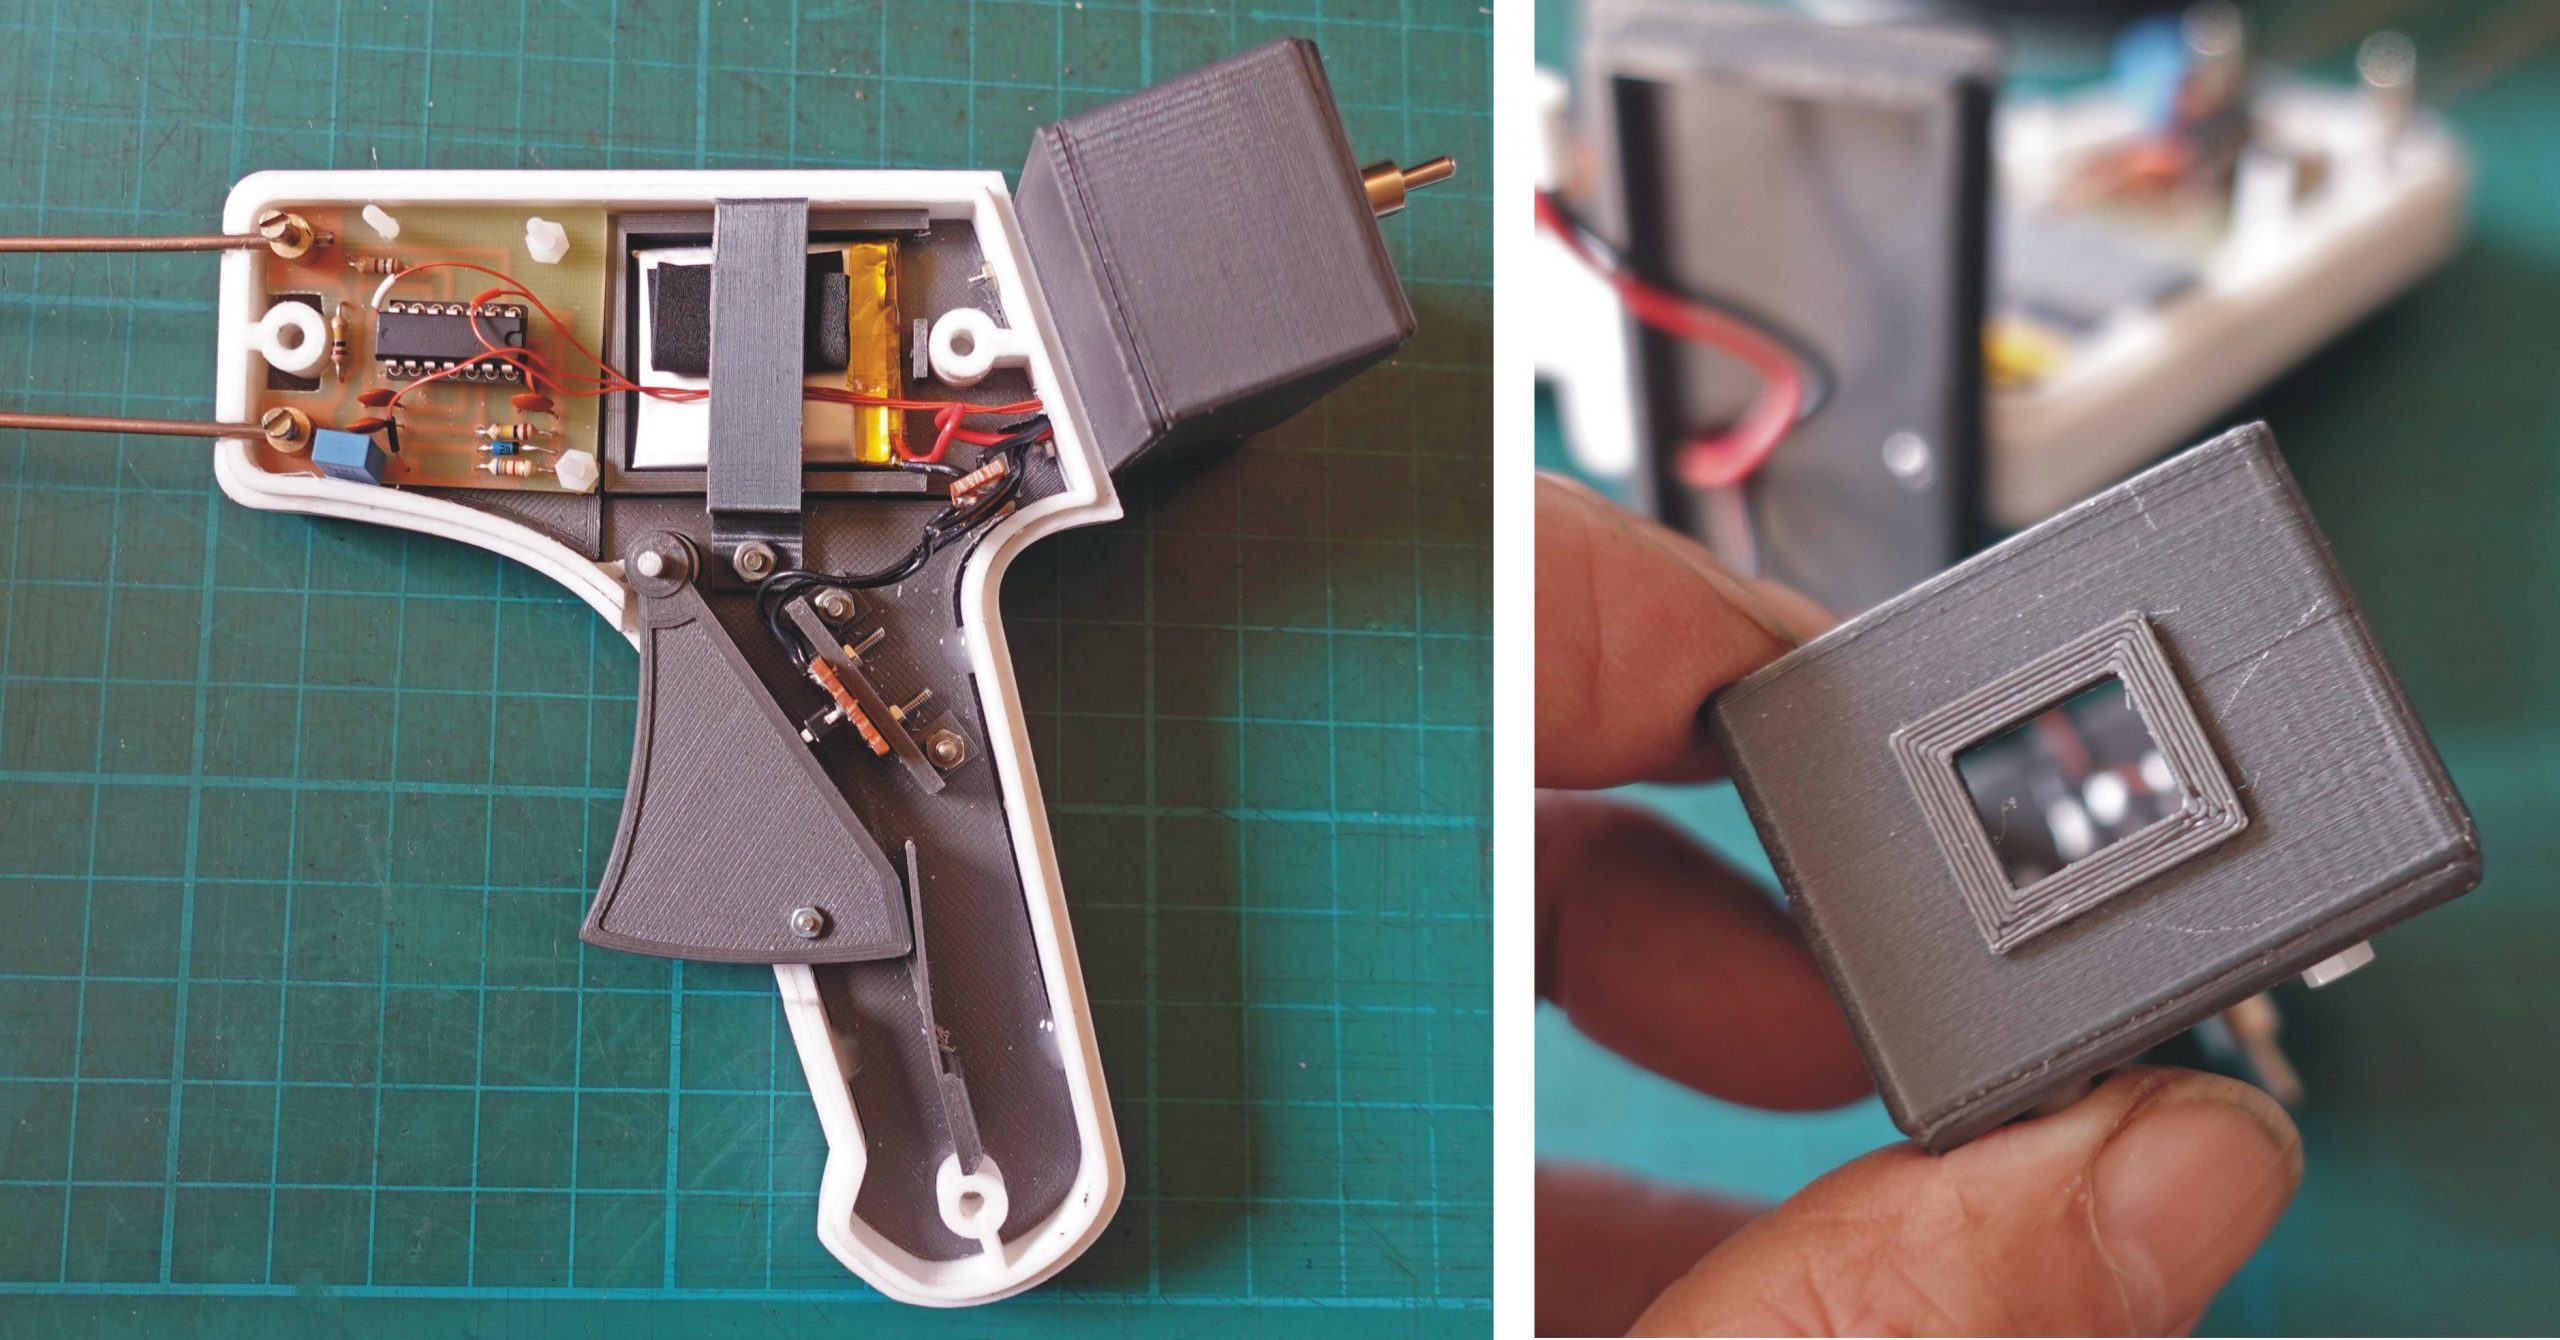 soil tester partially assembled and charging port.